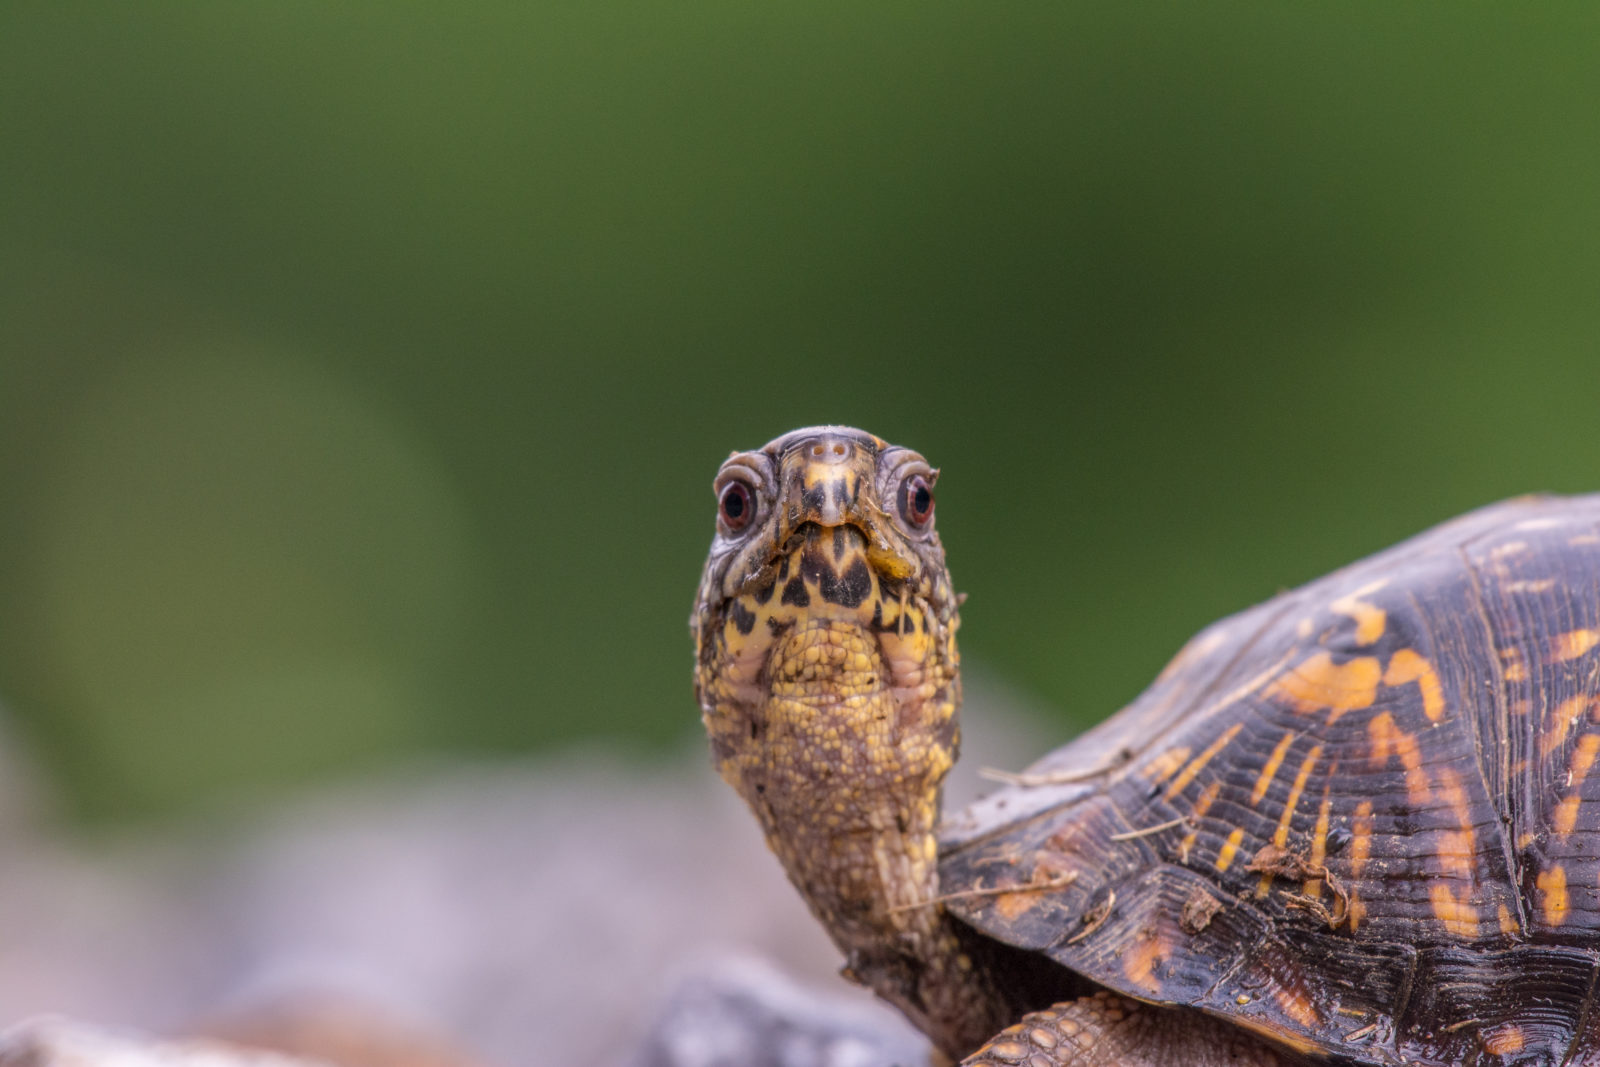 Eastern Box Turtle Searching for a Nesting Site